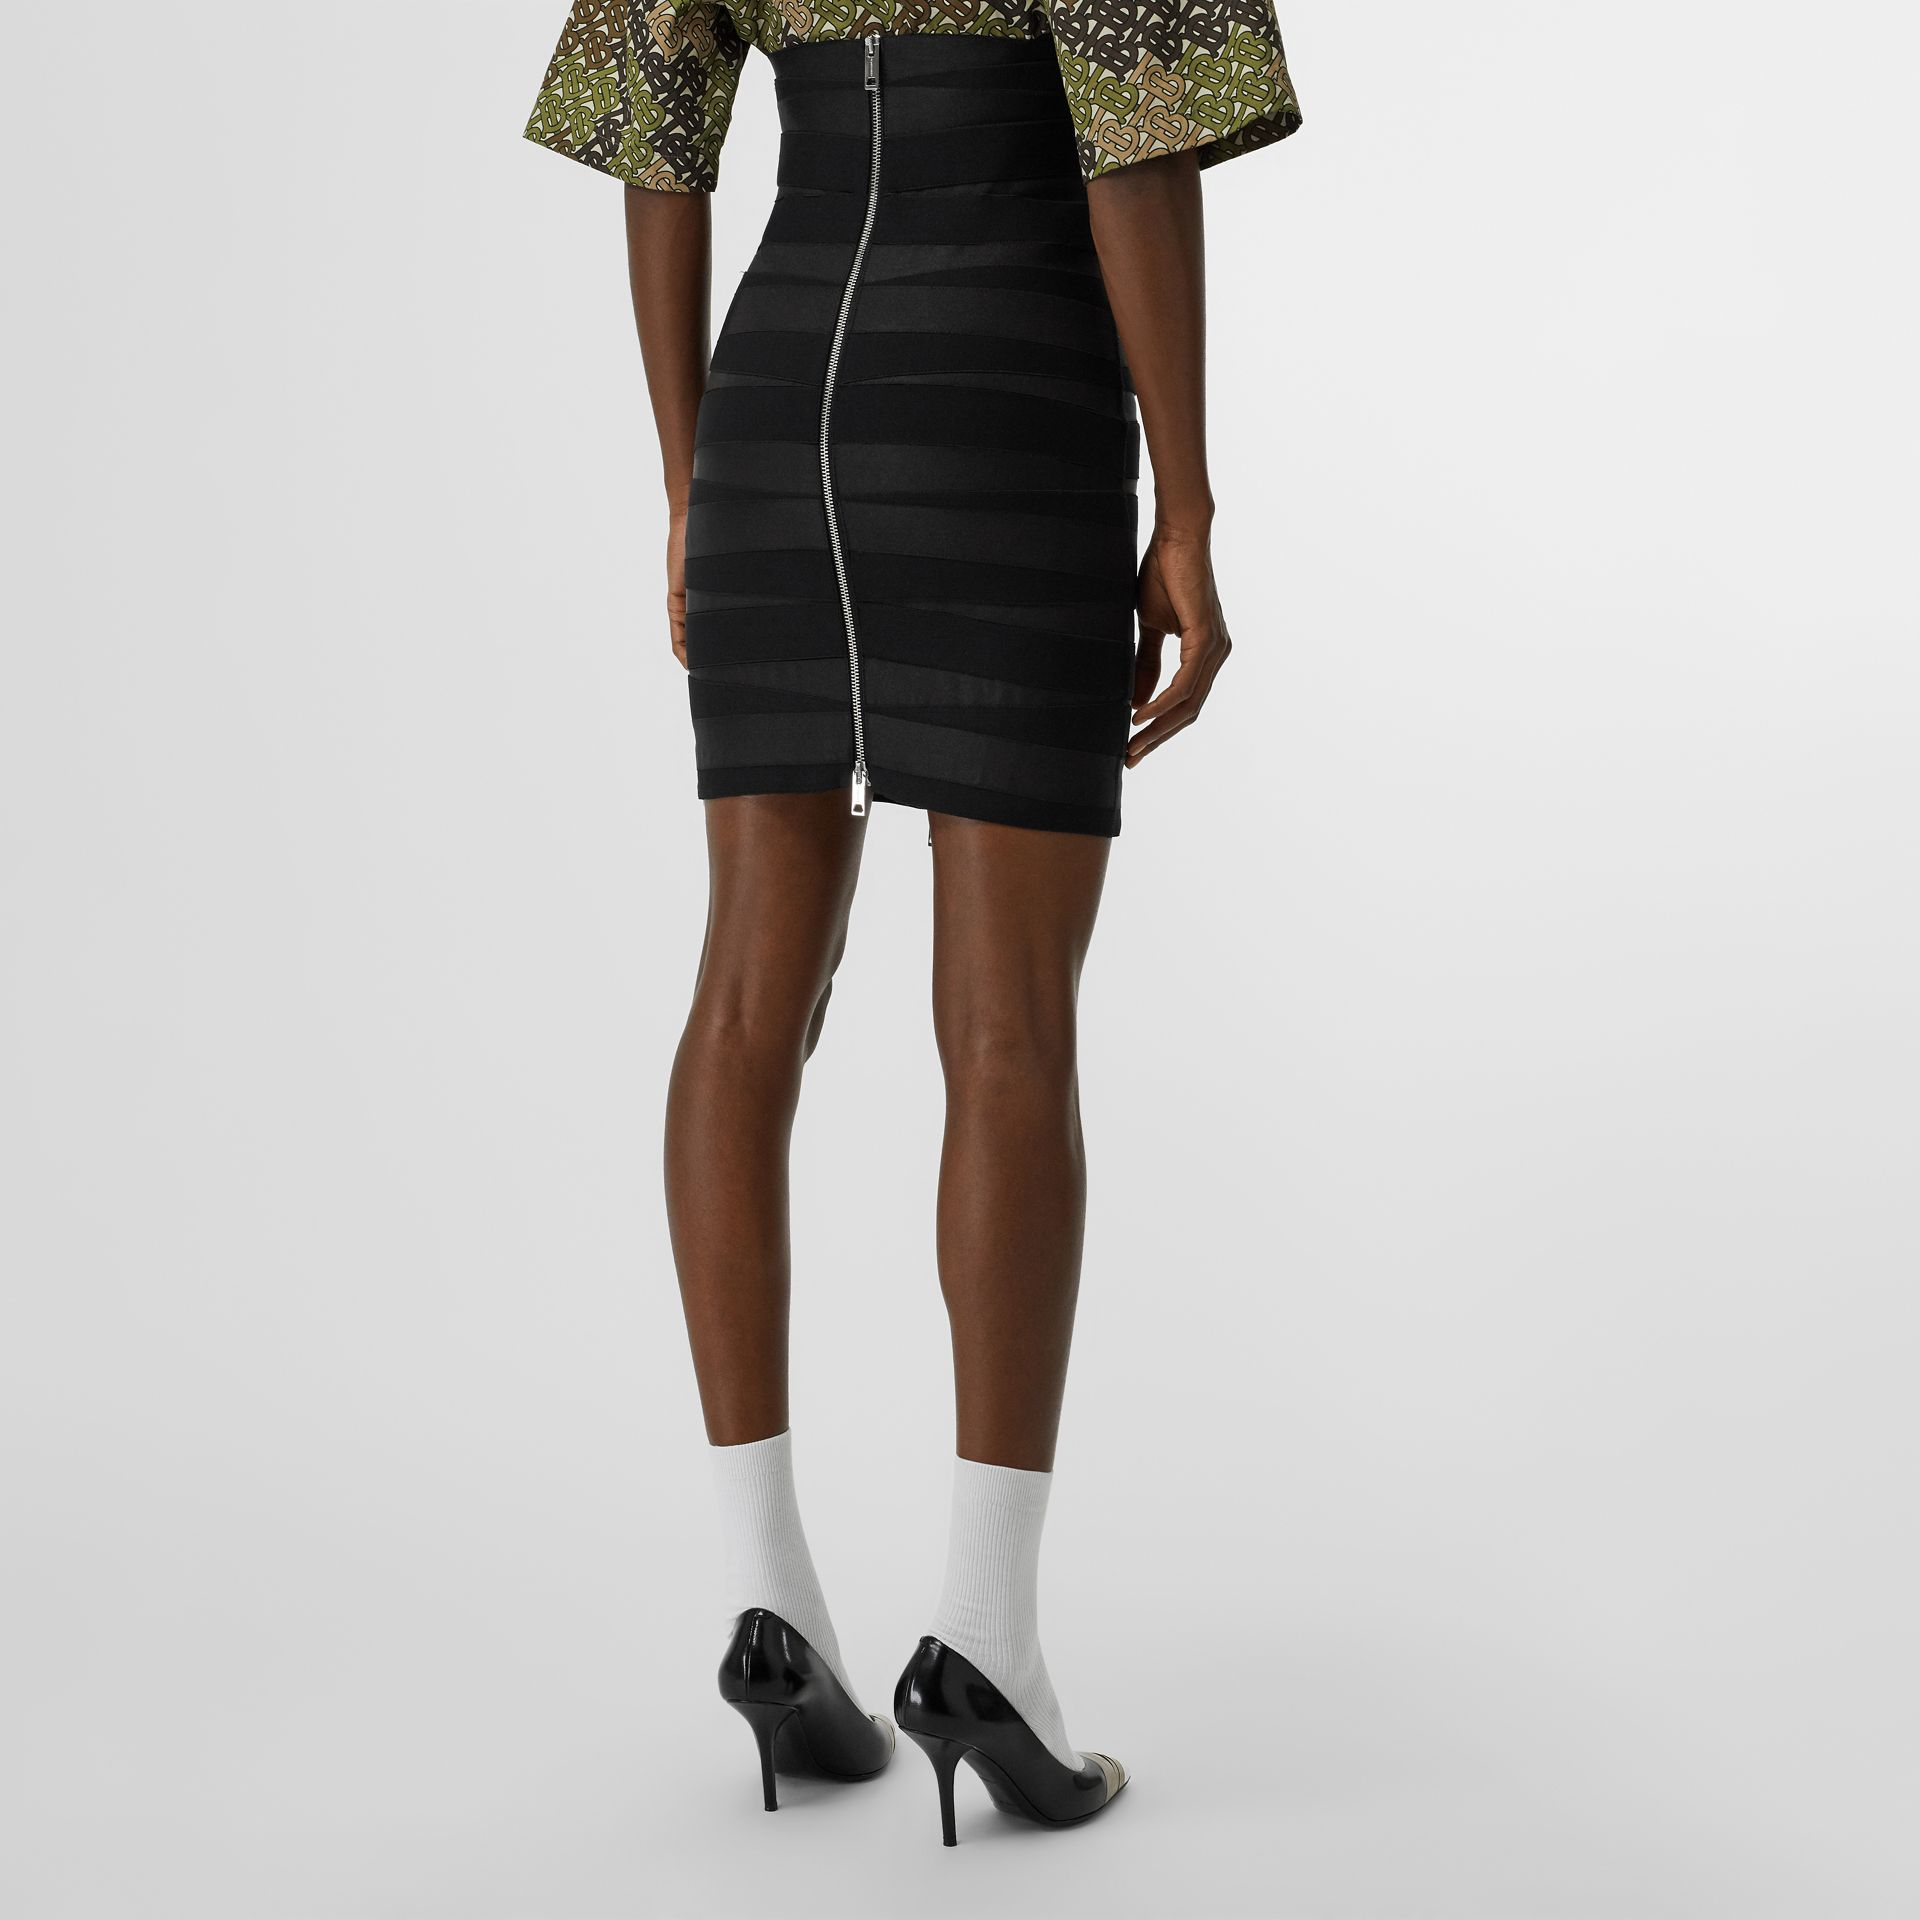 Stretch Zip-front Bandage Skirt in Black - Women | Burberry - gallery image 2